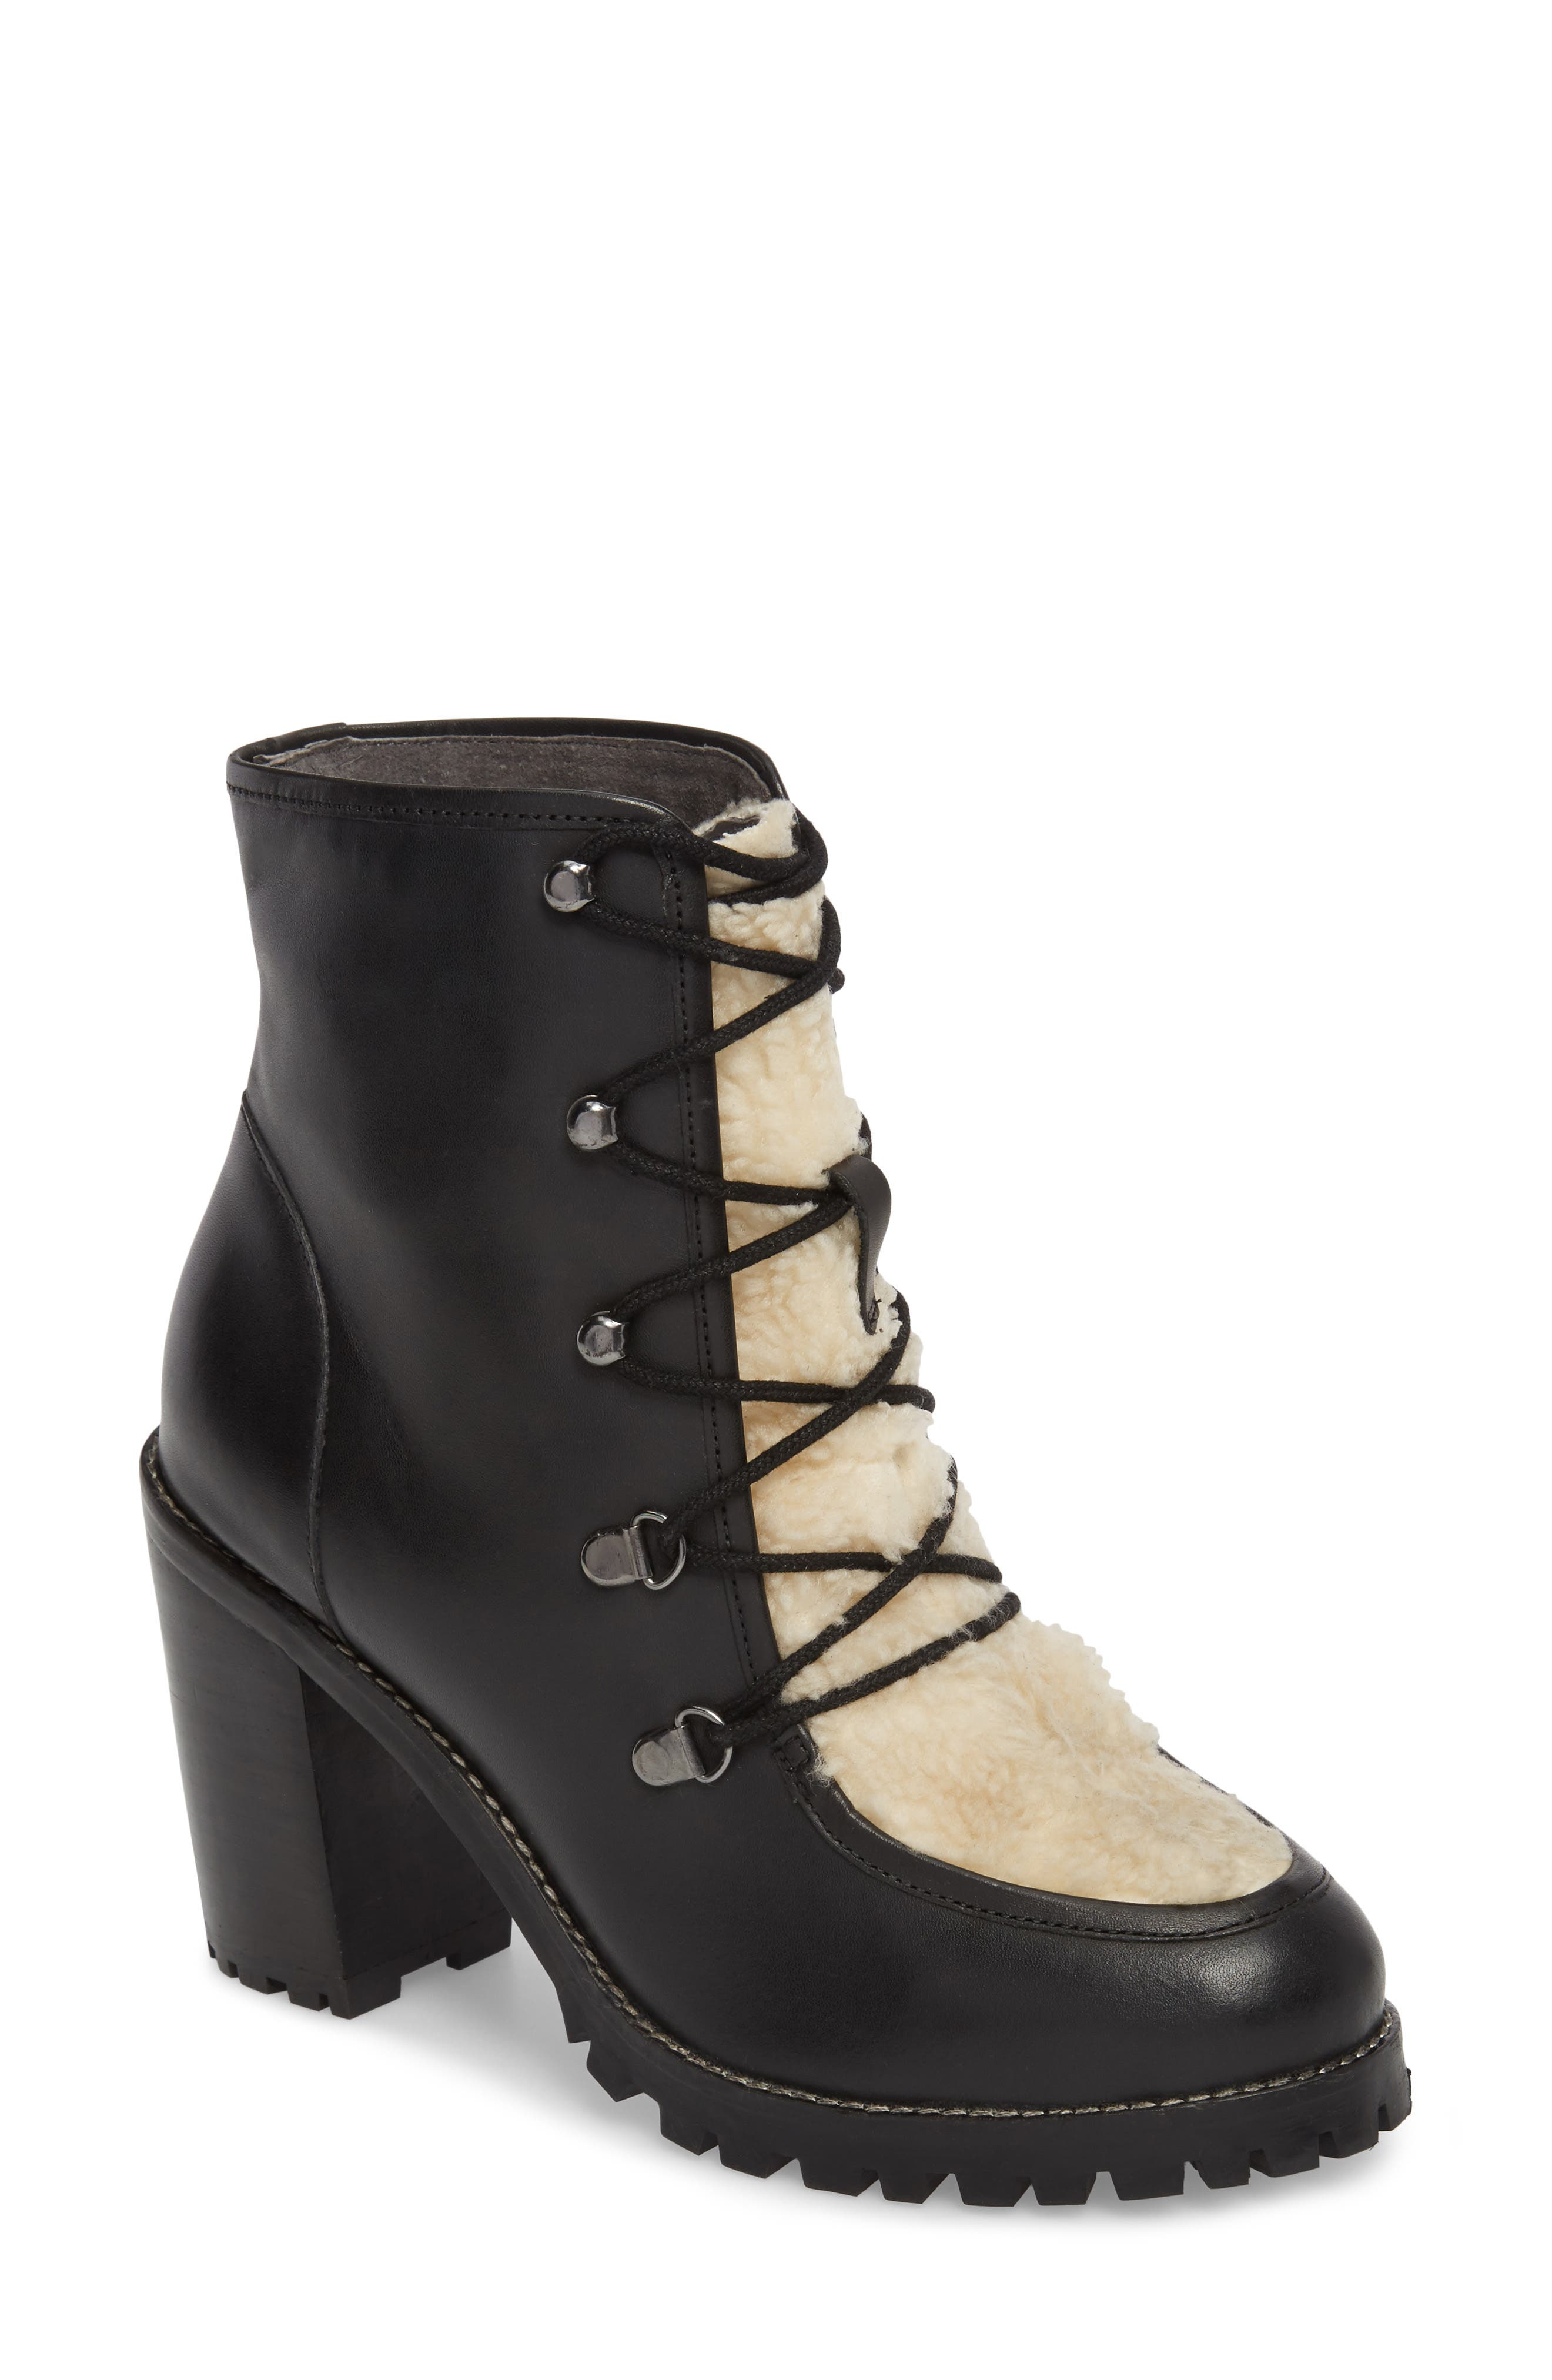 Theater Lace-Up Bootie,                             Main thumbnail 1, color,                             001